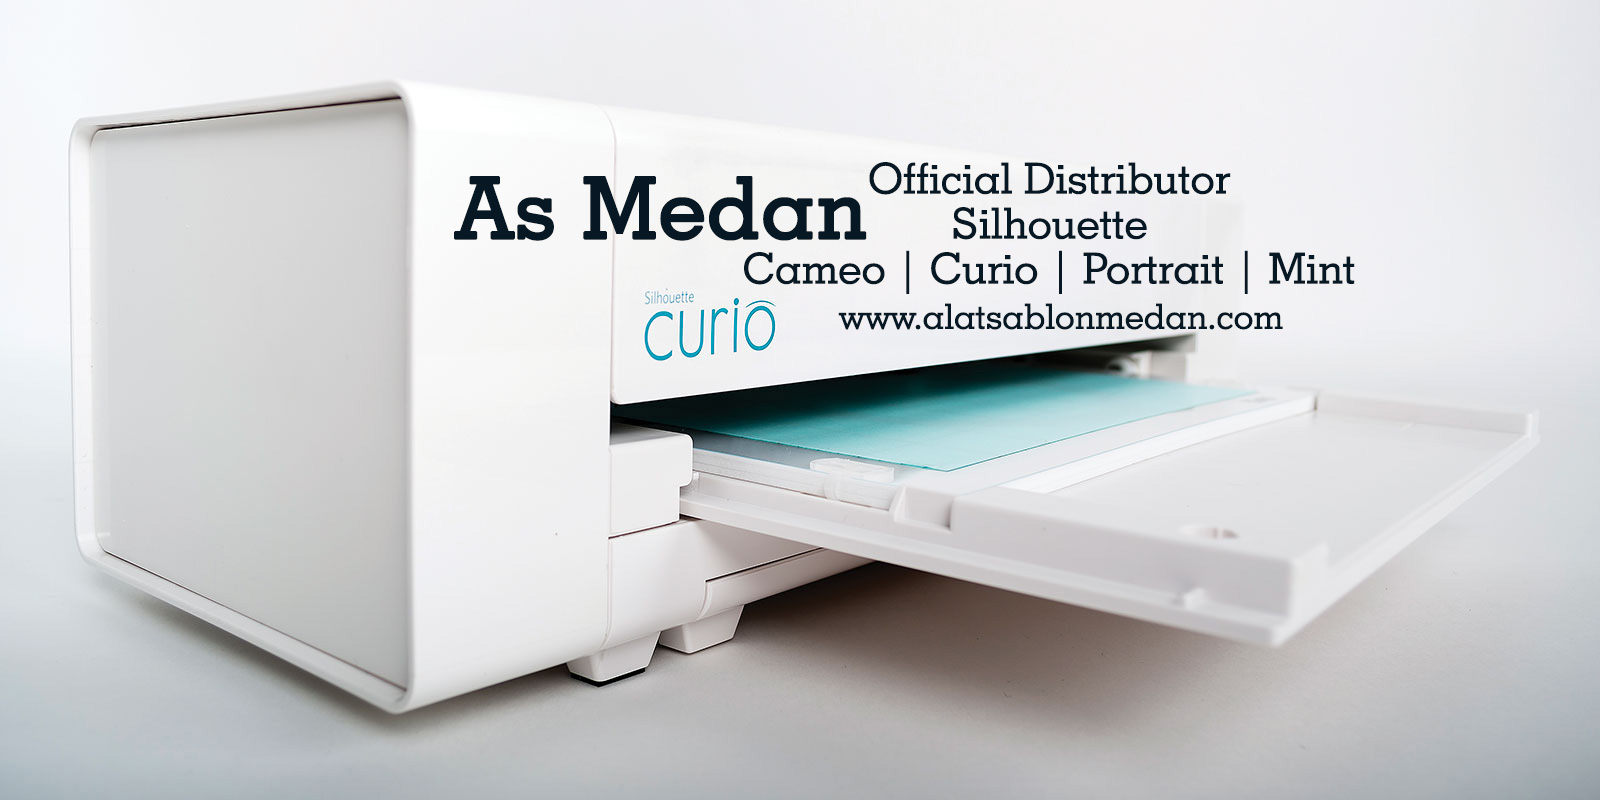 As Medan Official Distributor Silhouette Cameo Curio Portrait Mints